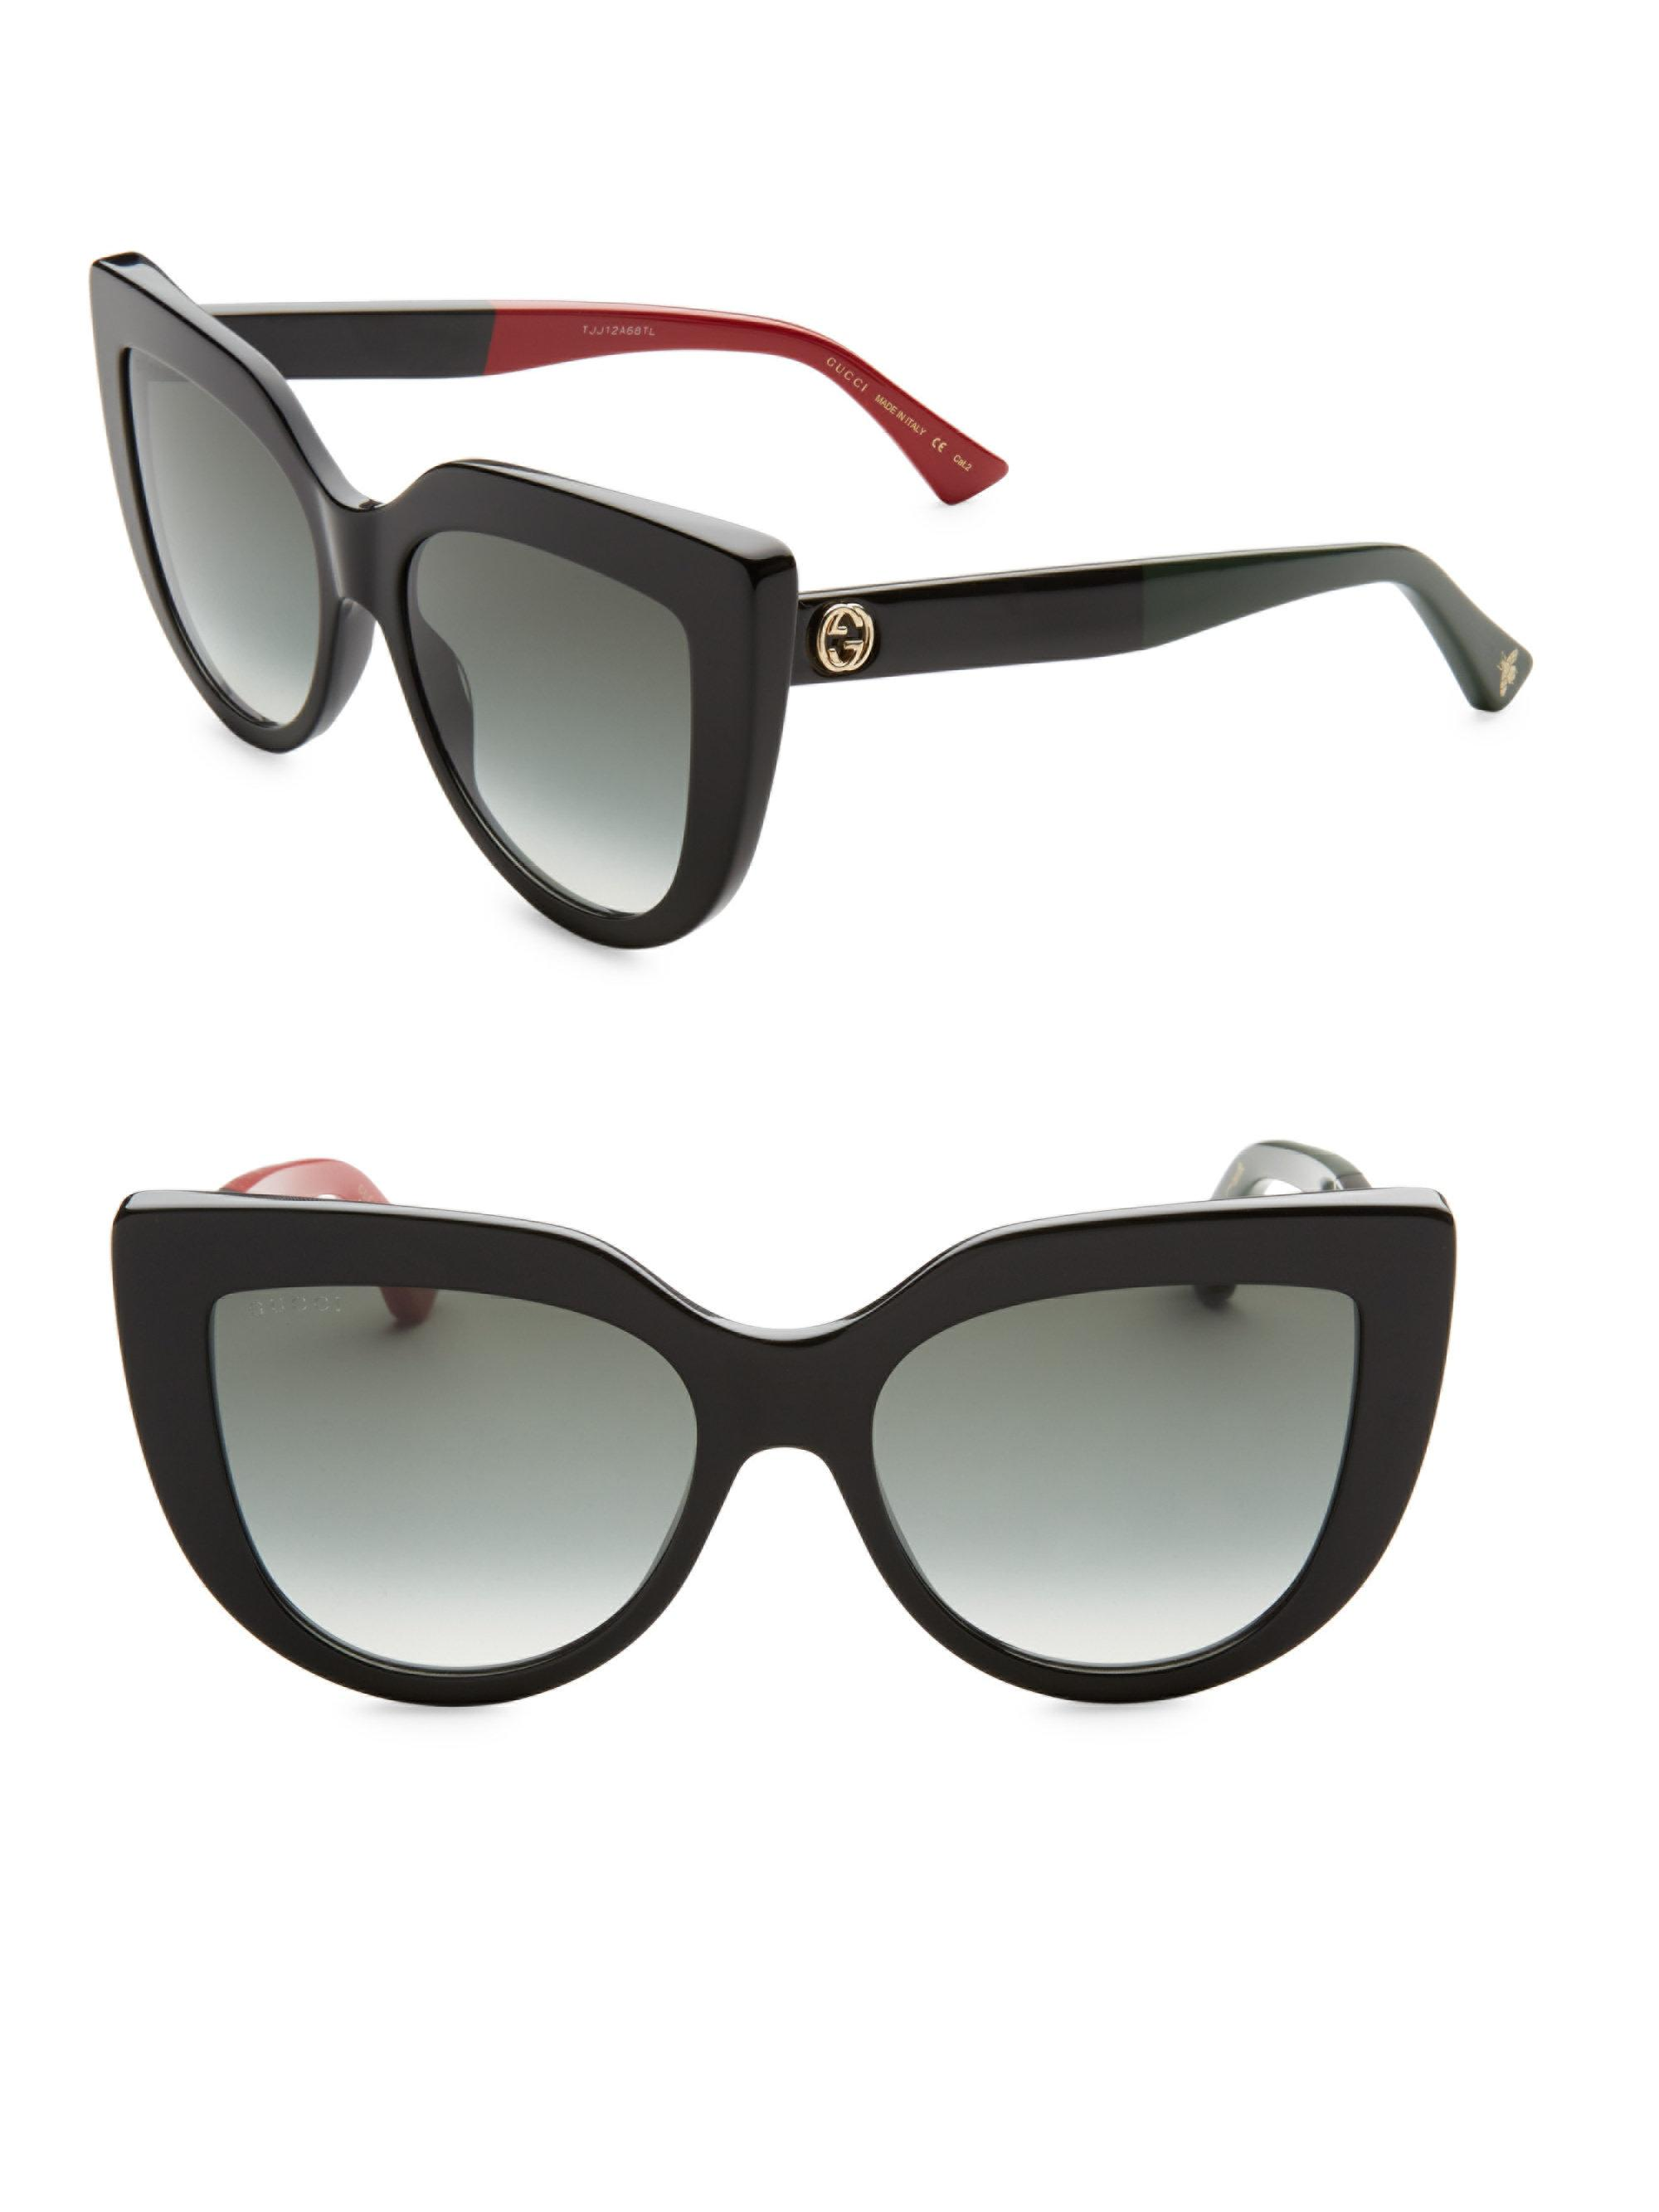 ab98365a3559d Gucci 53mm Colorblocked Arm Cat Eye Sunglasses in Black - Lyst